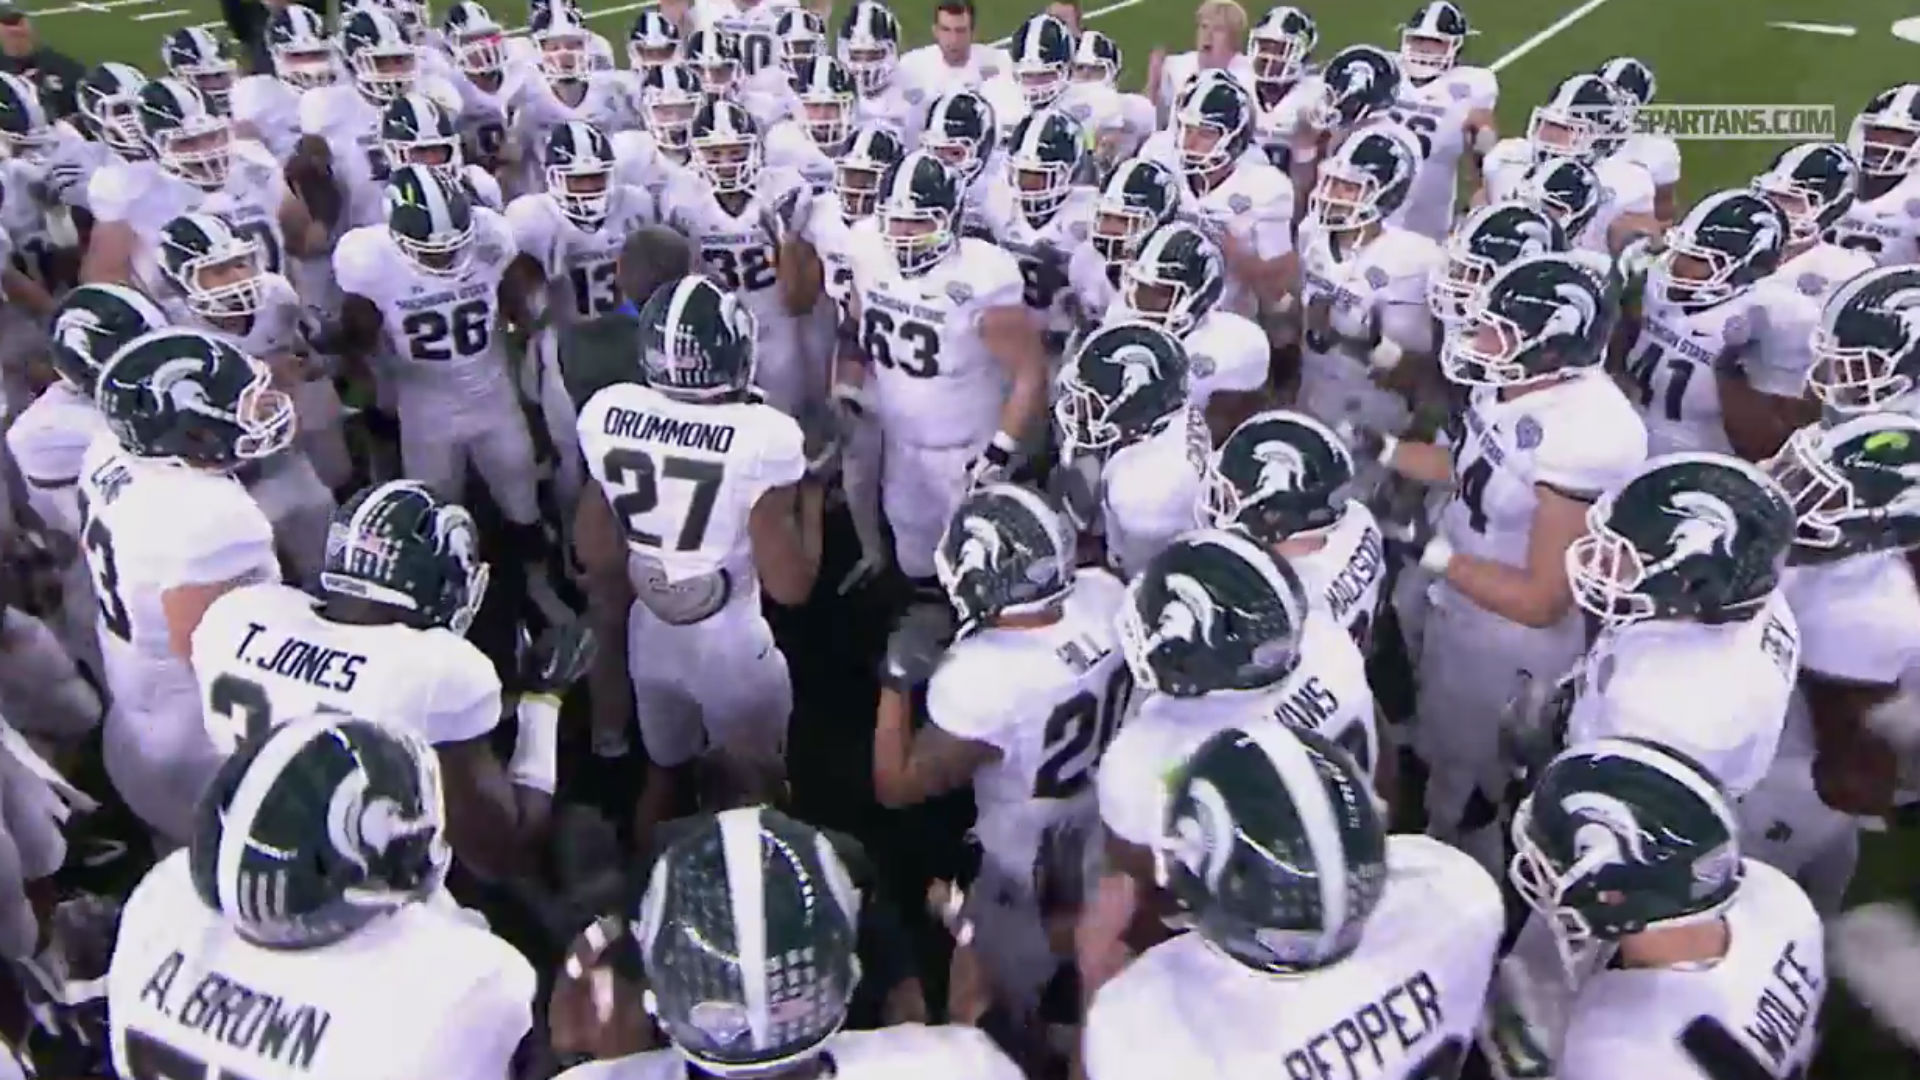 Michigan State releases awesome 'Molding Champions' video